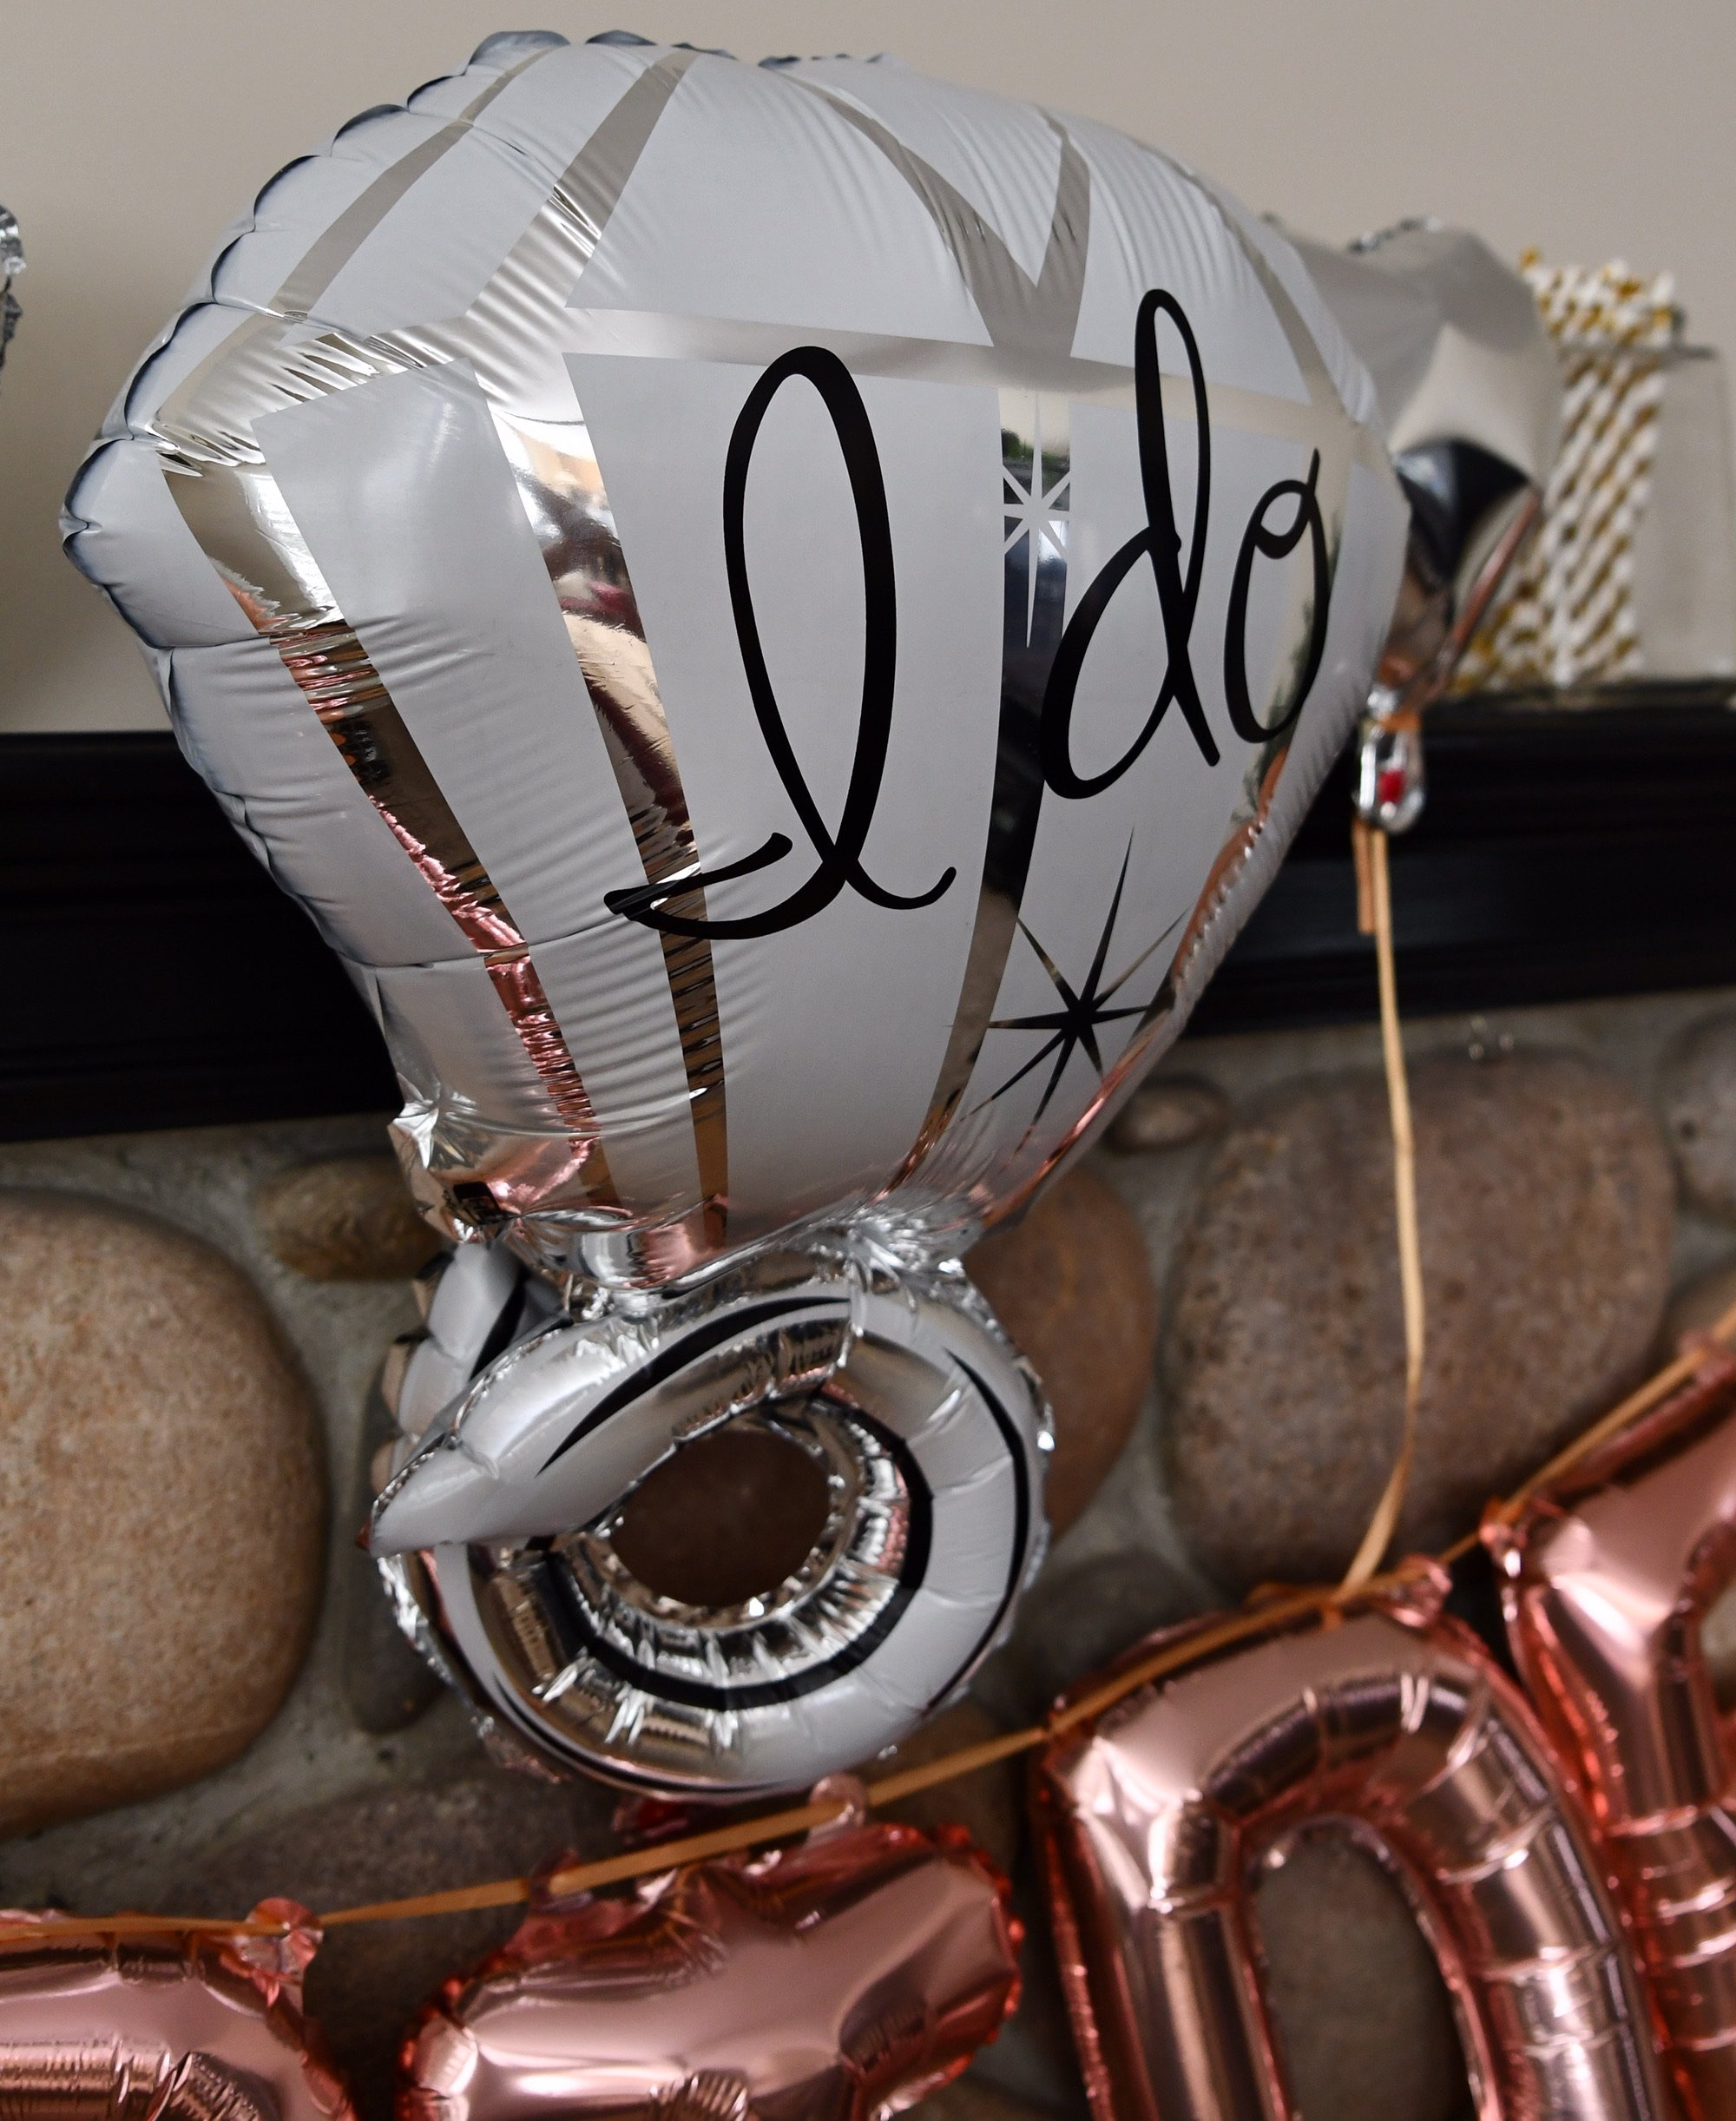 Bachelorette Party Decorations Pack - Rose Gold Party Supply Kit with Rose Gold, White Pearl and Silver Heart Balloons + Rose Gold Straws + The Bride Sash + Bride Foil Banner and Diamond Ring Balloon by Party Simple (Image #5)